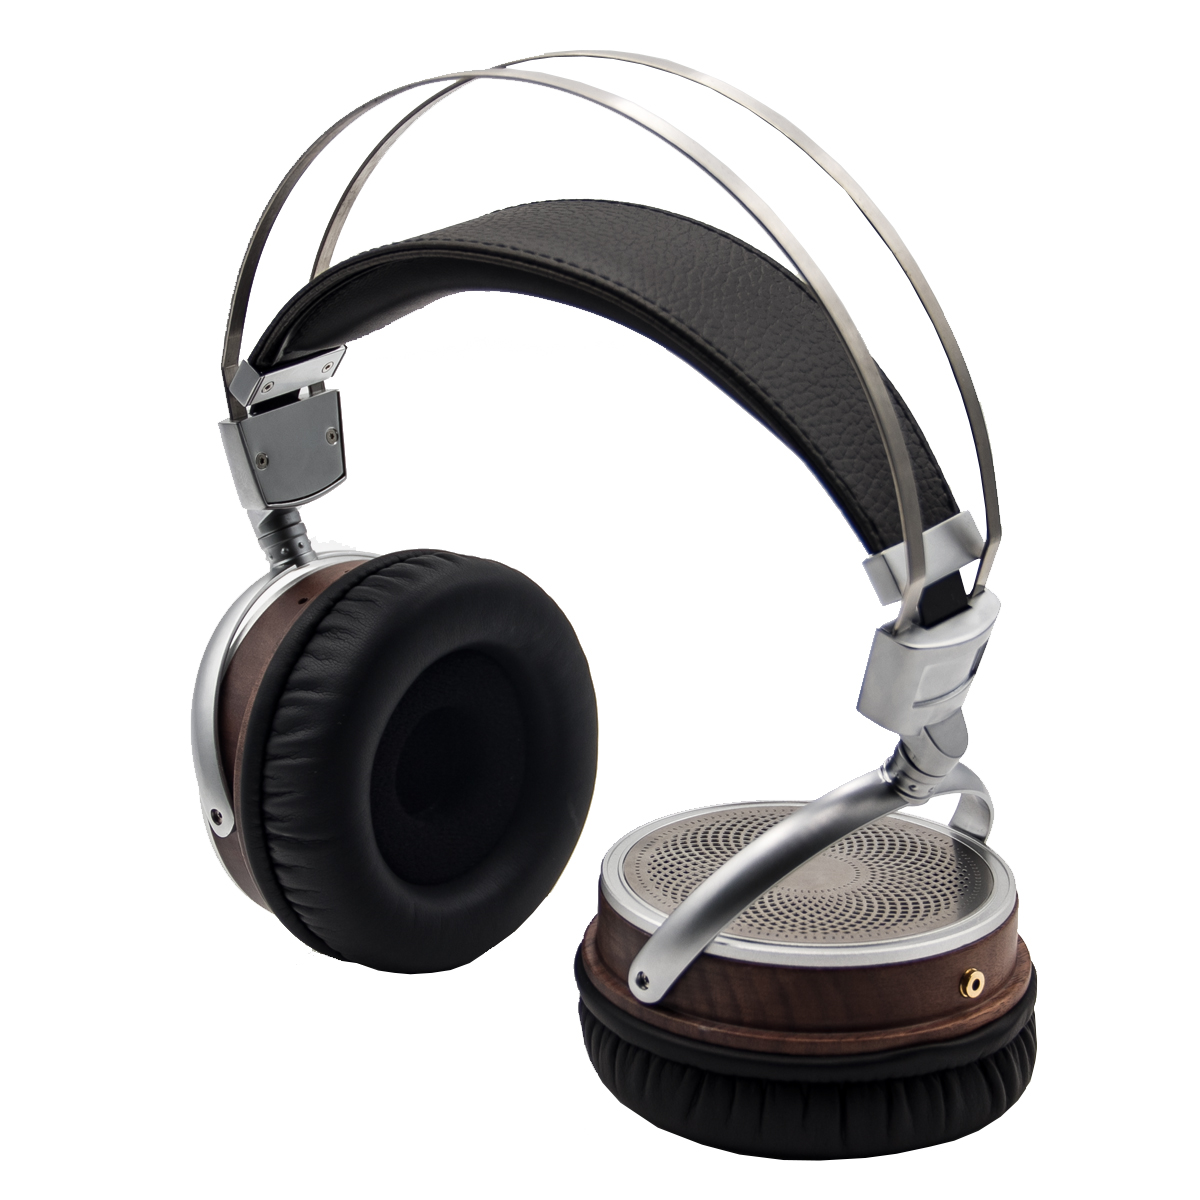 WHP860S Retro Trendy Head-mounted HIFI Walnut Alloy High-fidelity Mobile Computer Headset 0